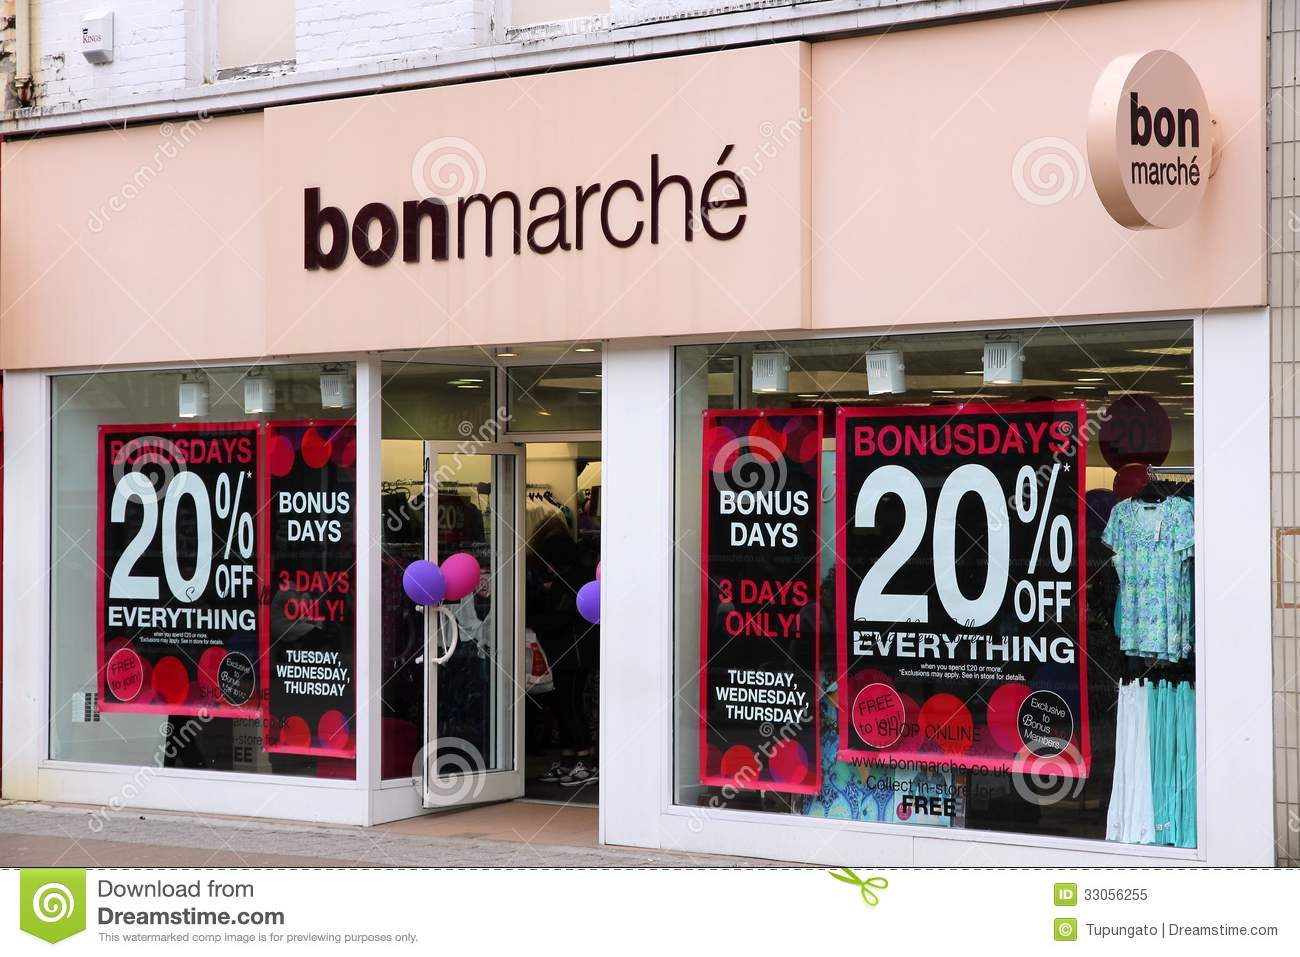 Girls clothing stores Bolton clothing store